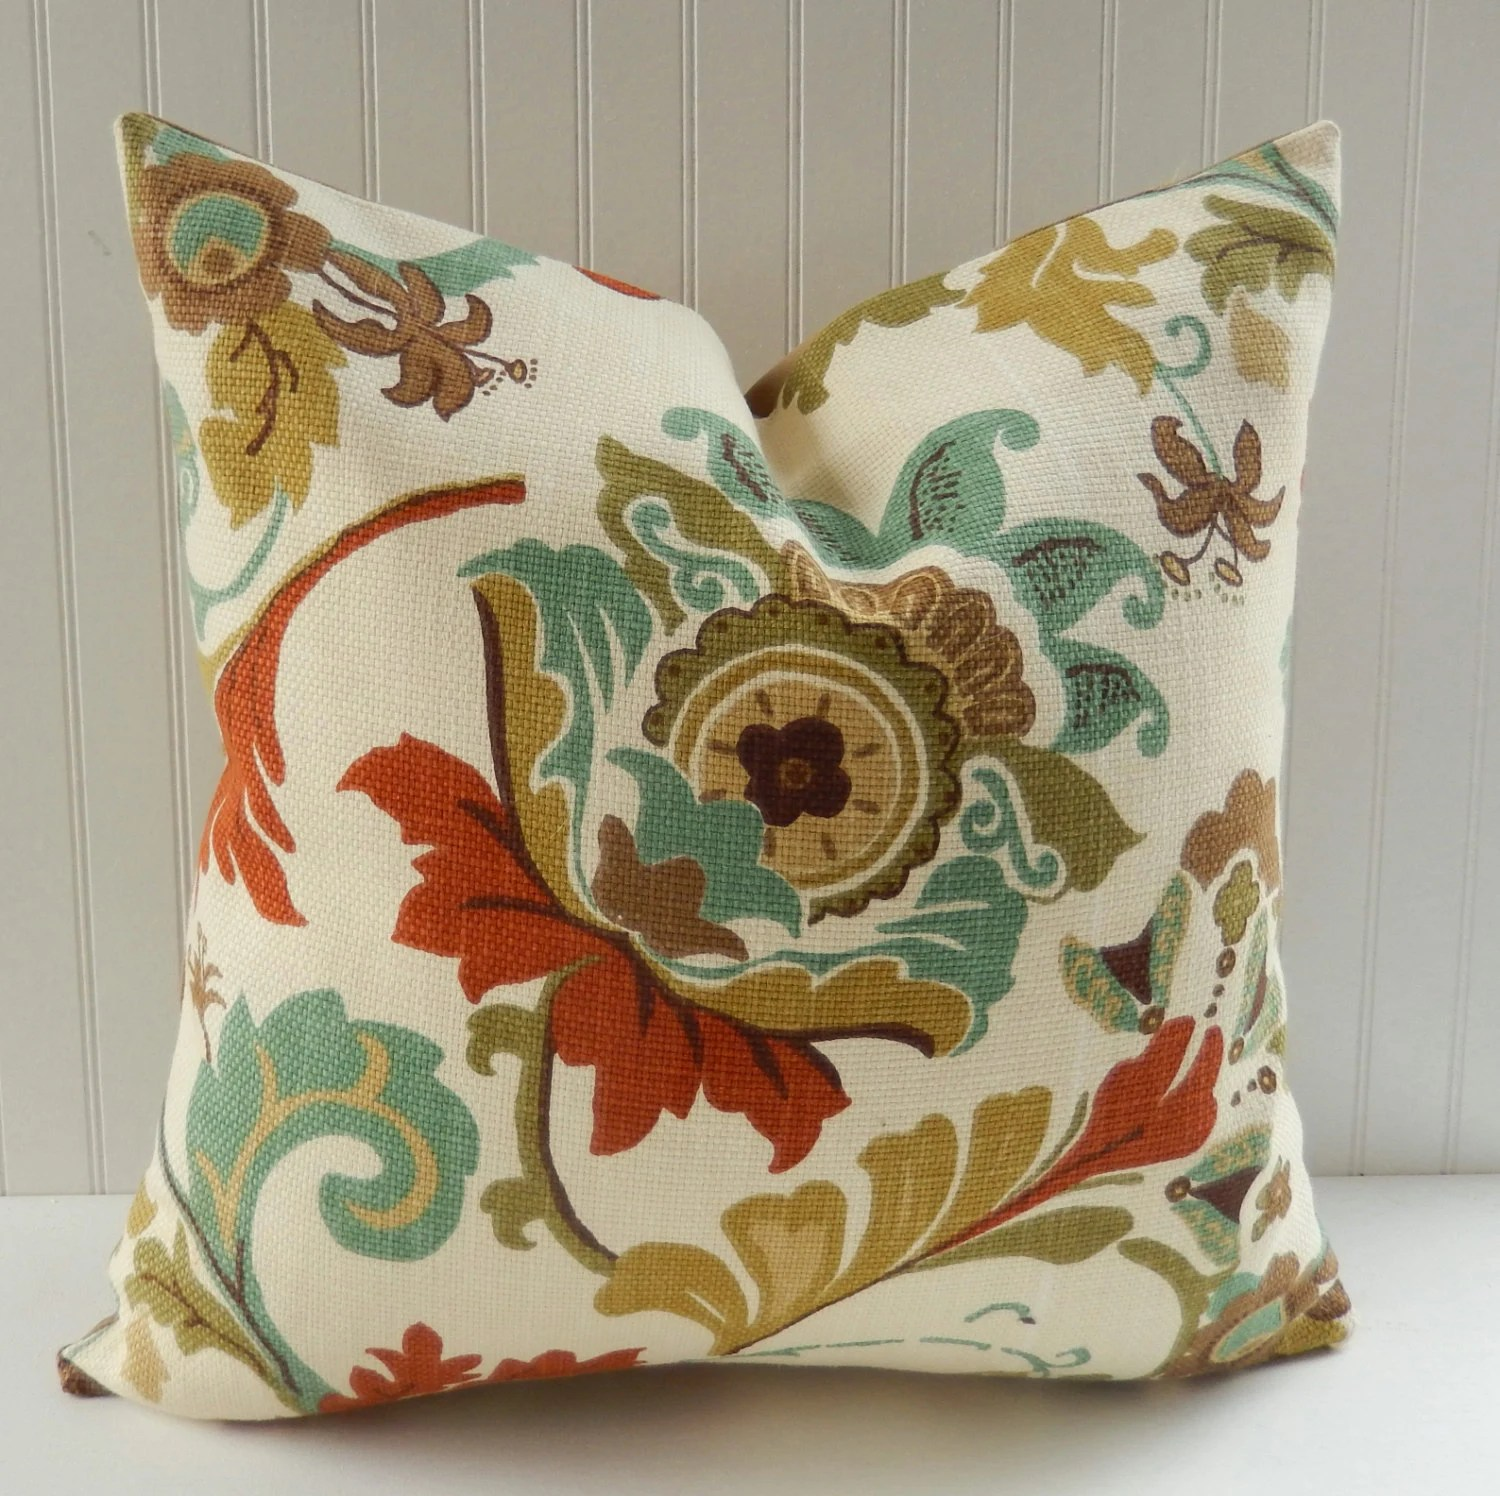 Floral Decorative Pillow Cover Teal Rust Olive Green Large